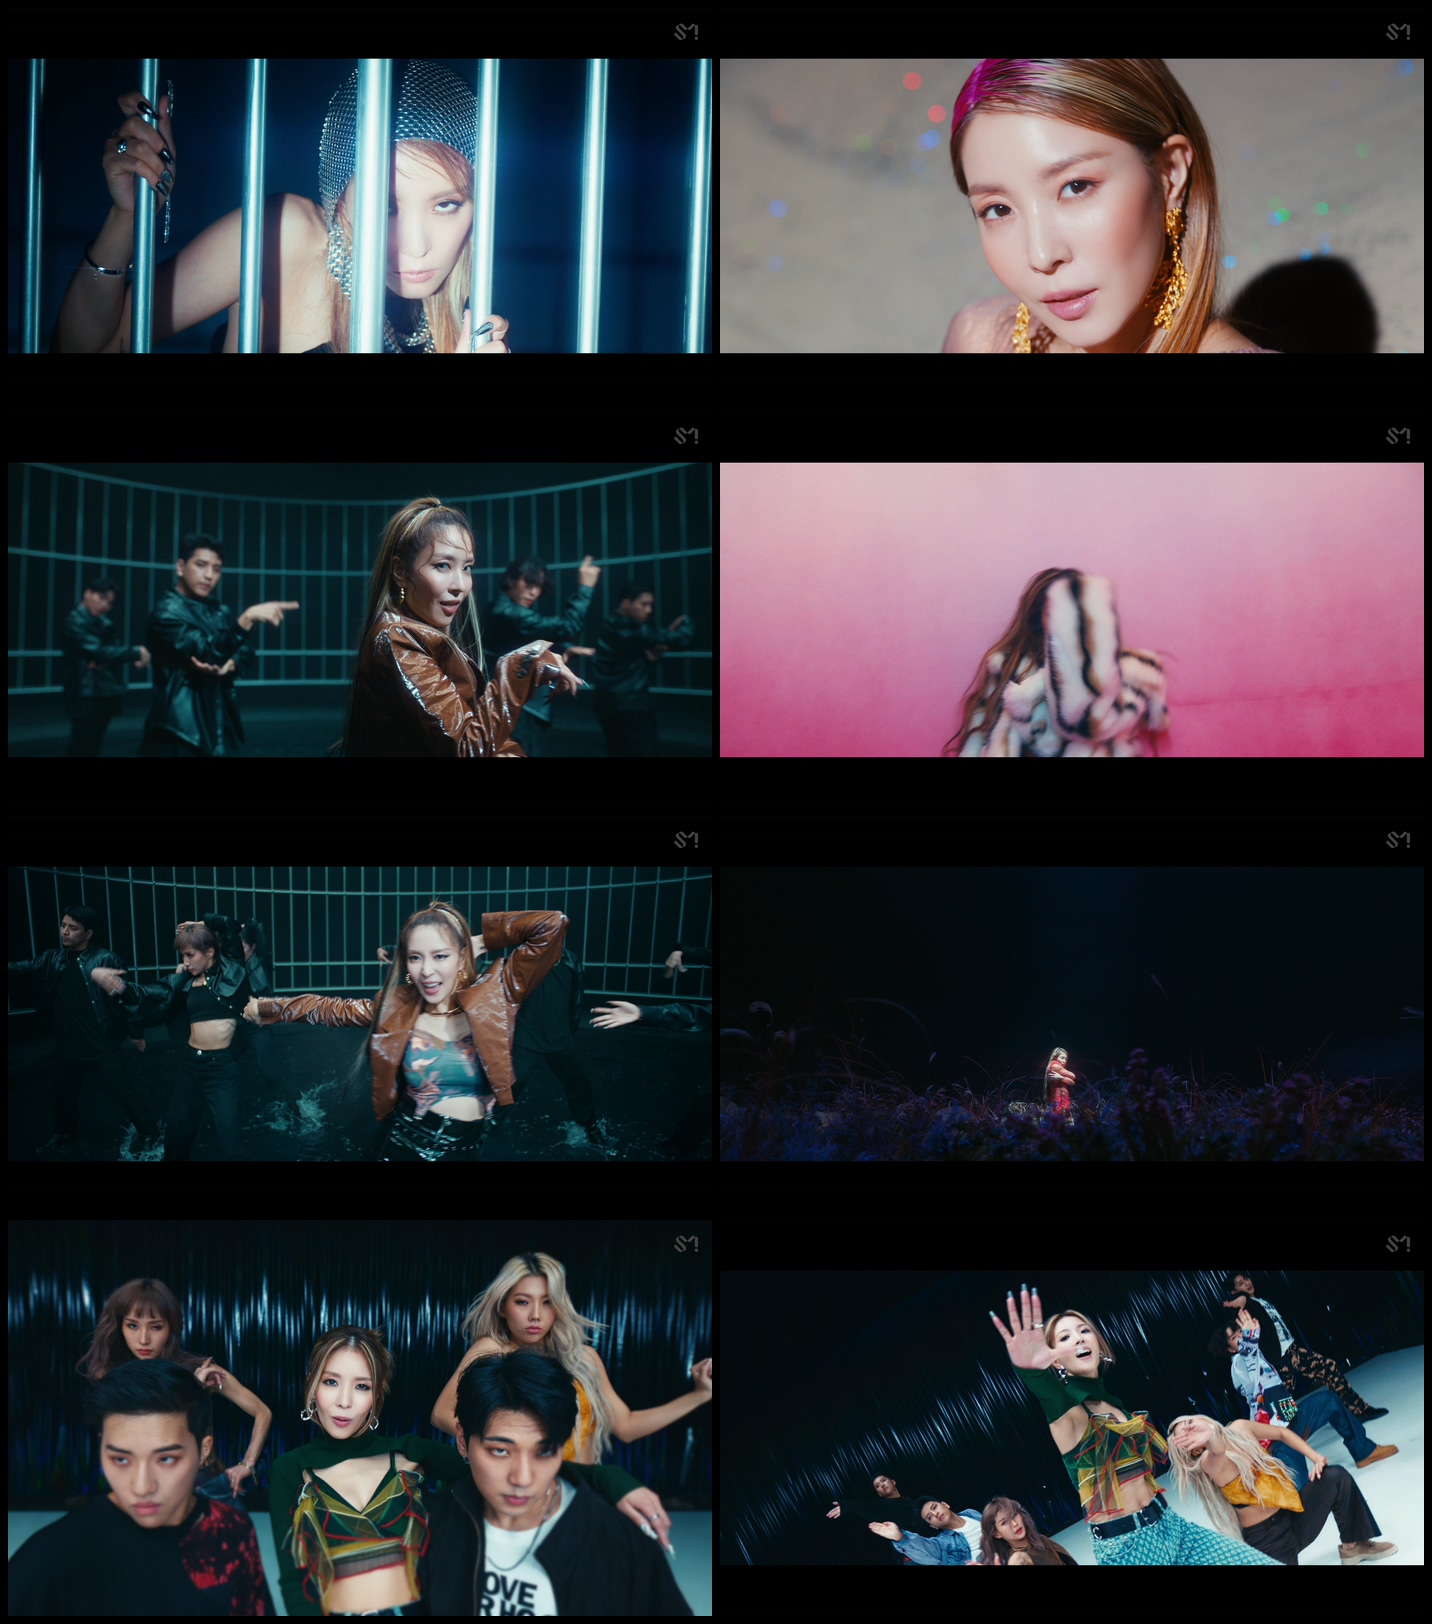 BoA – BETTER [MP4 2160p / WEB / Bugs][2020.12.01]